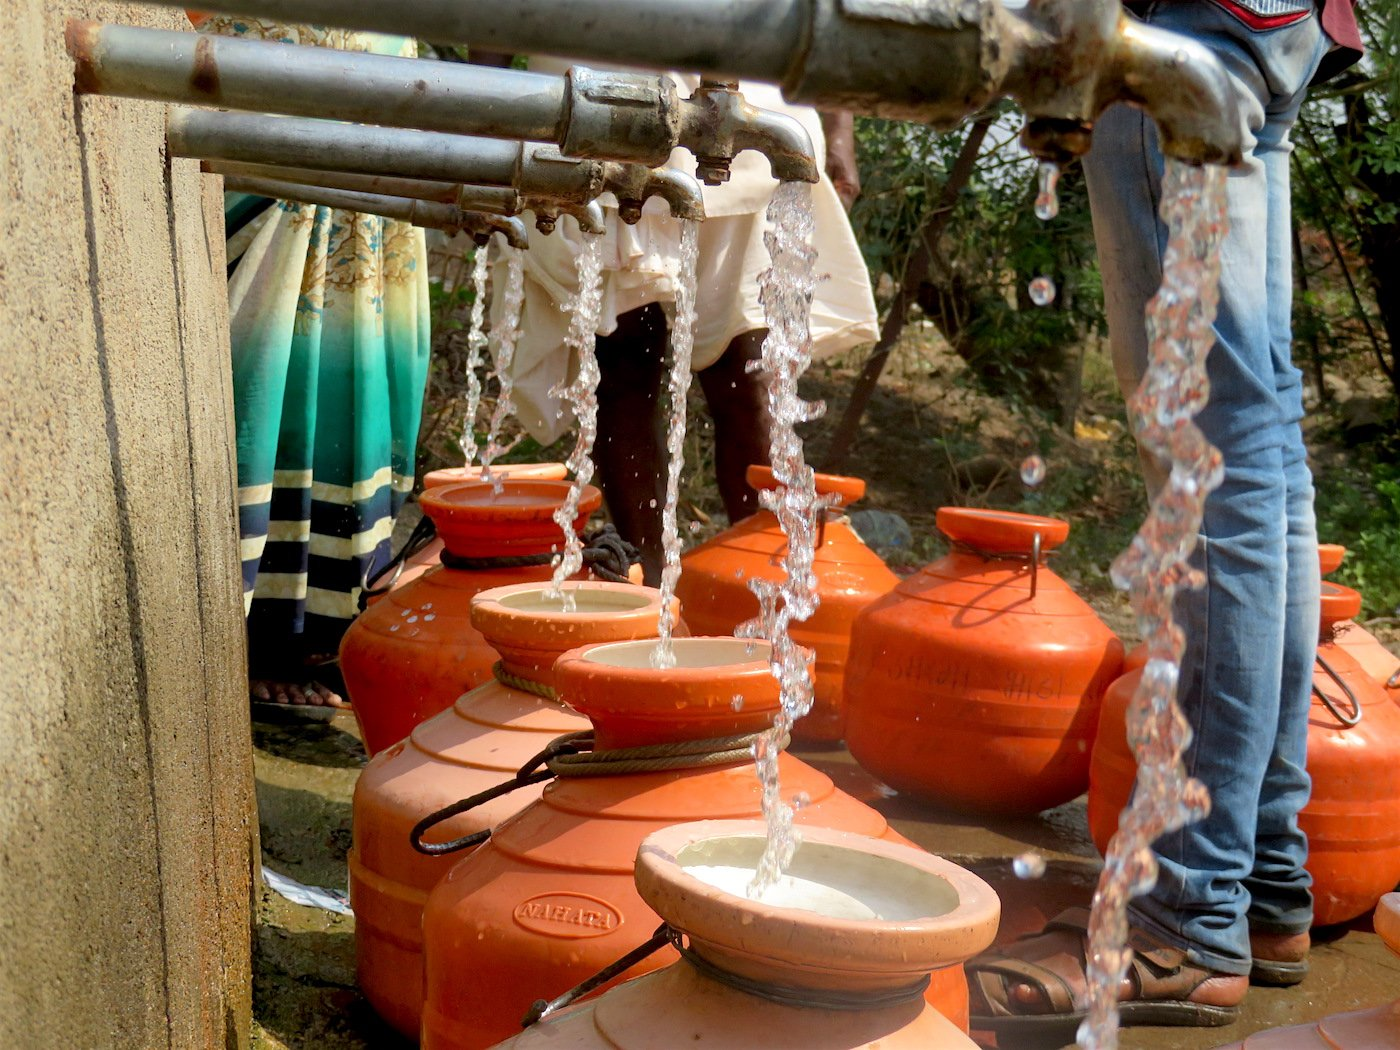 pots are filling with the water from tap